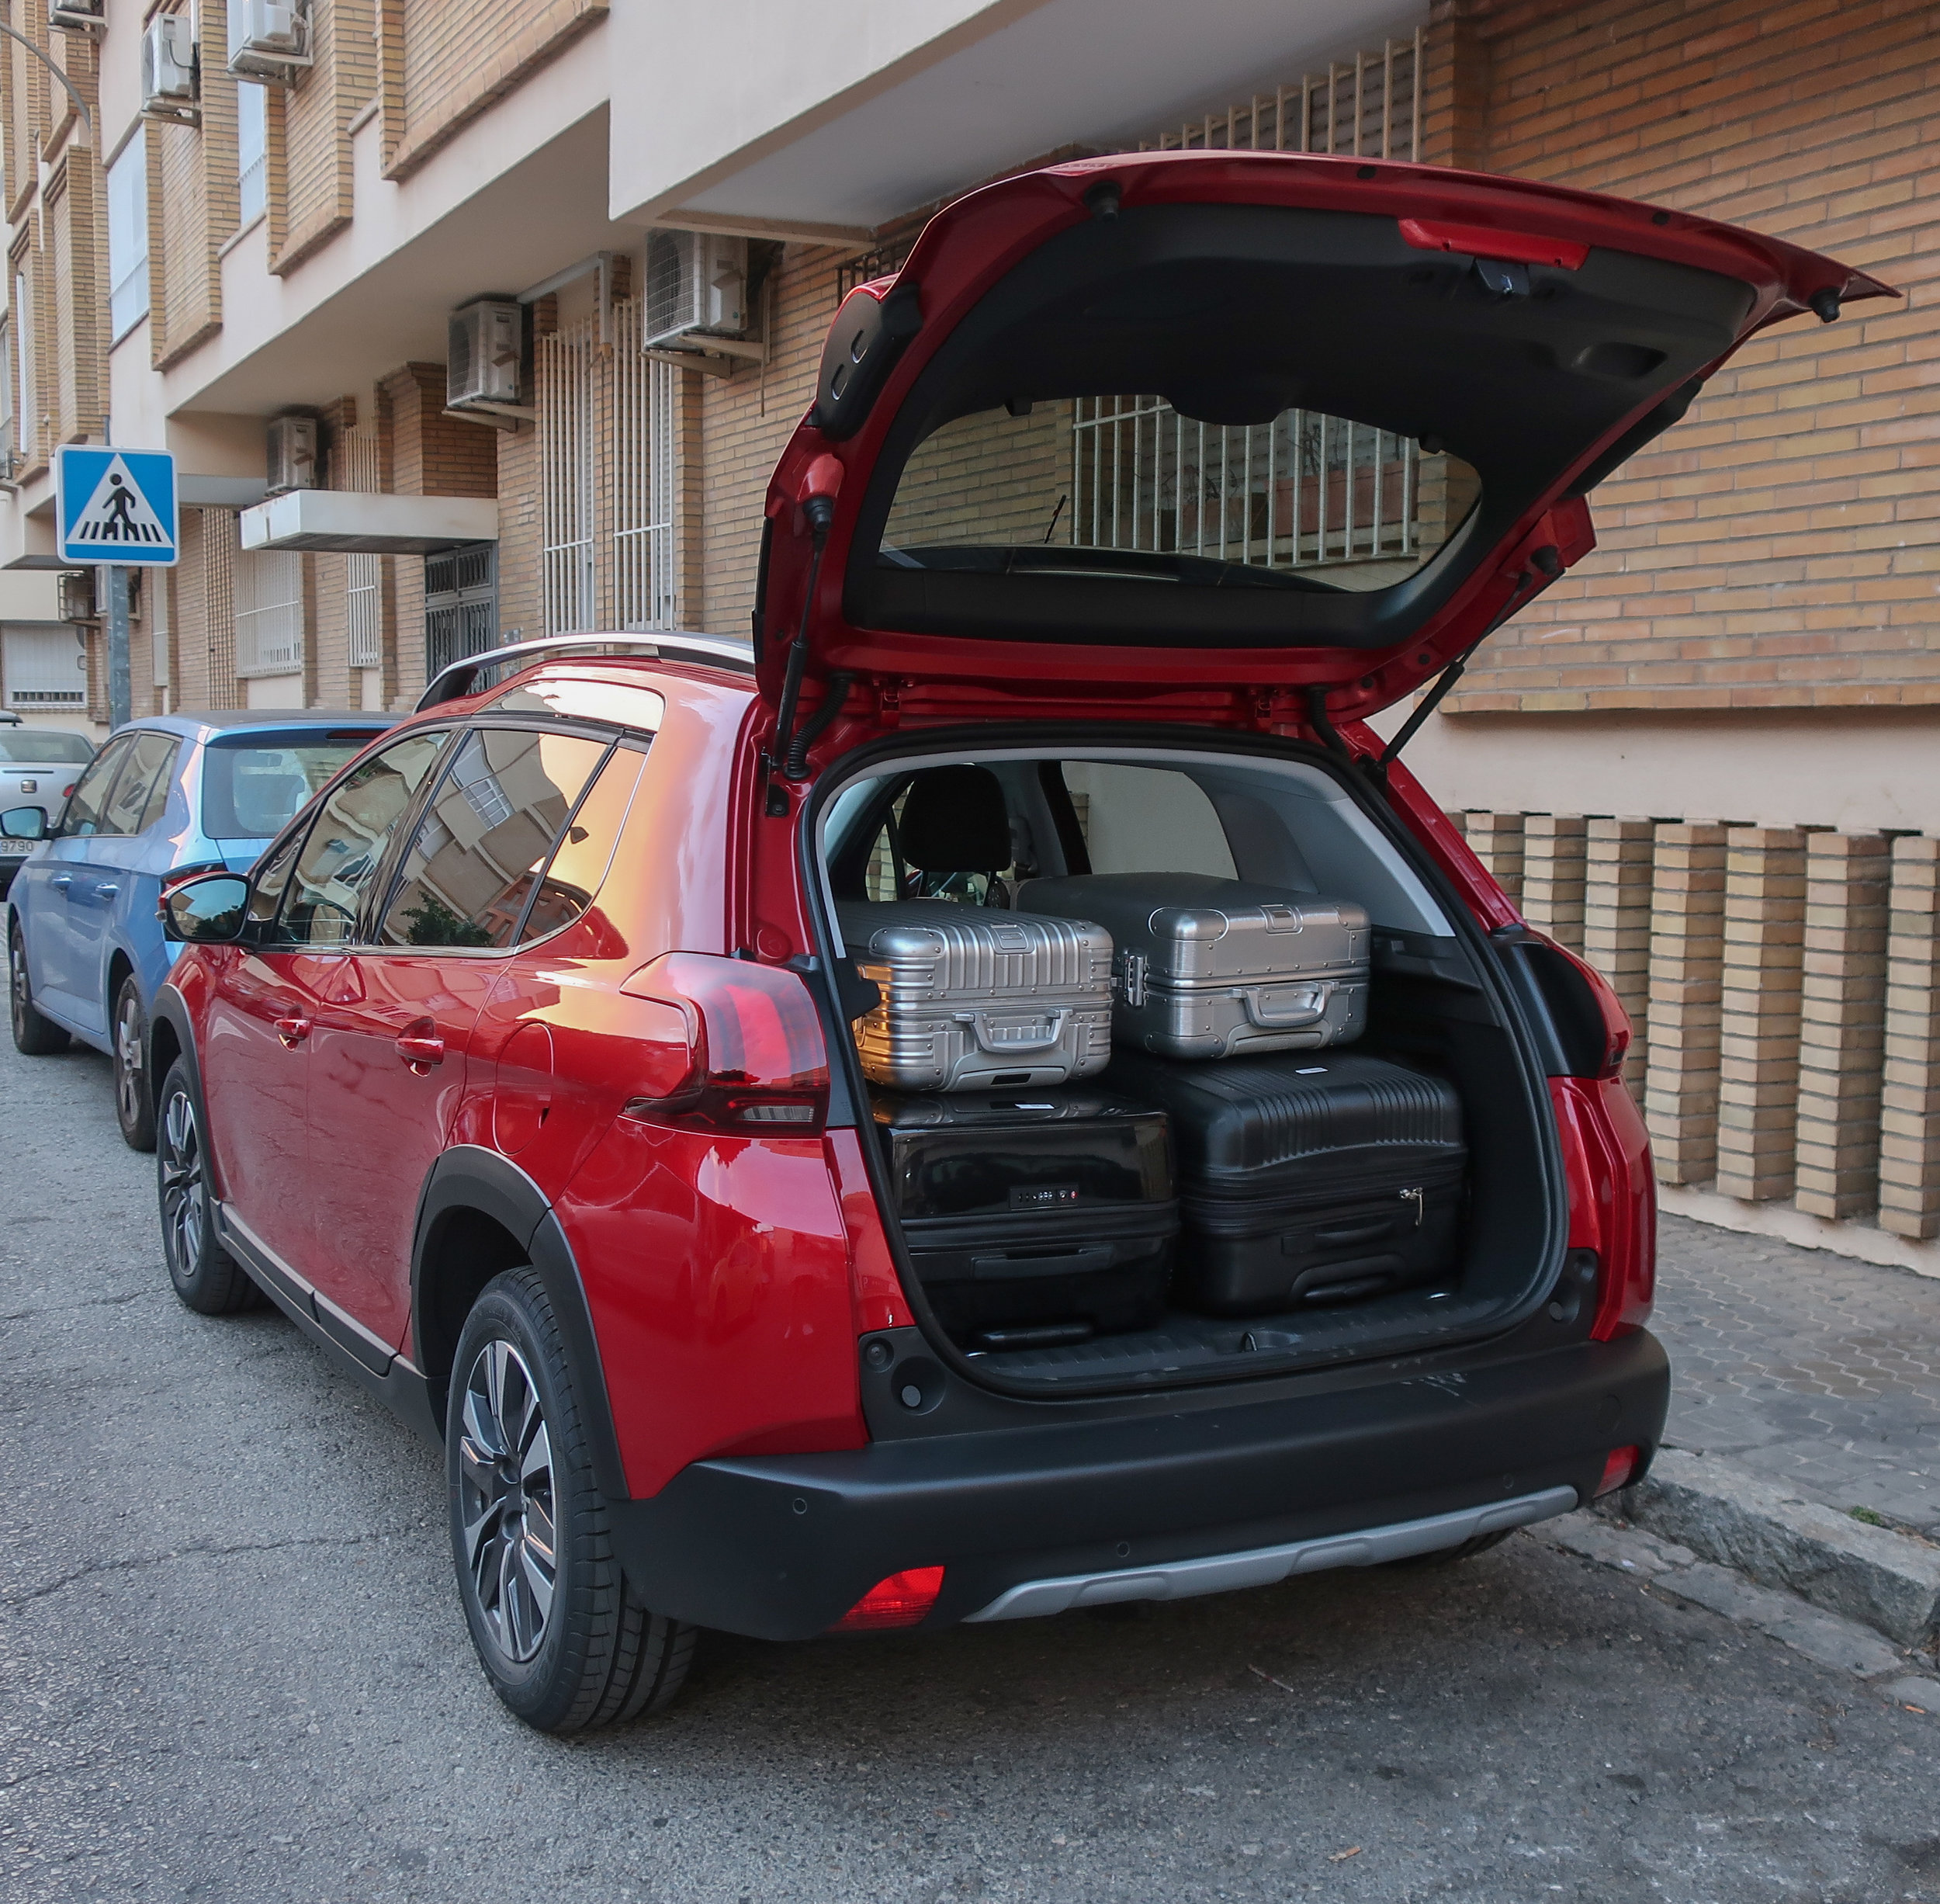 Packed the Peugeot 2008 with two large suitcases and two small suitcases. We folded the backseats down to make more room for our backpacks, photography gear, and extras.